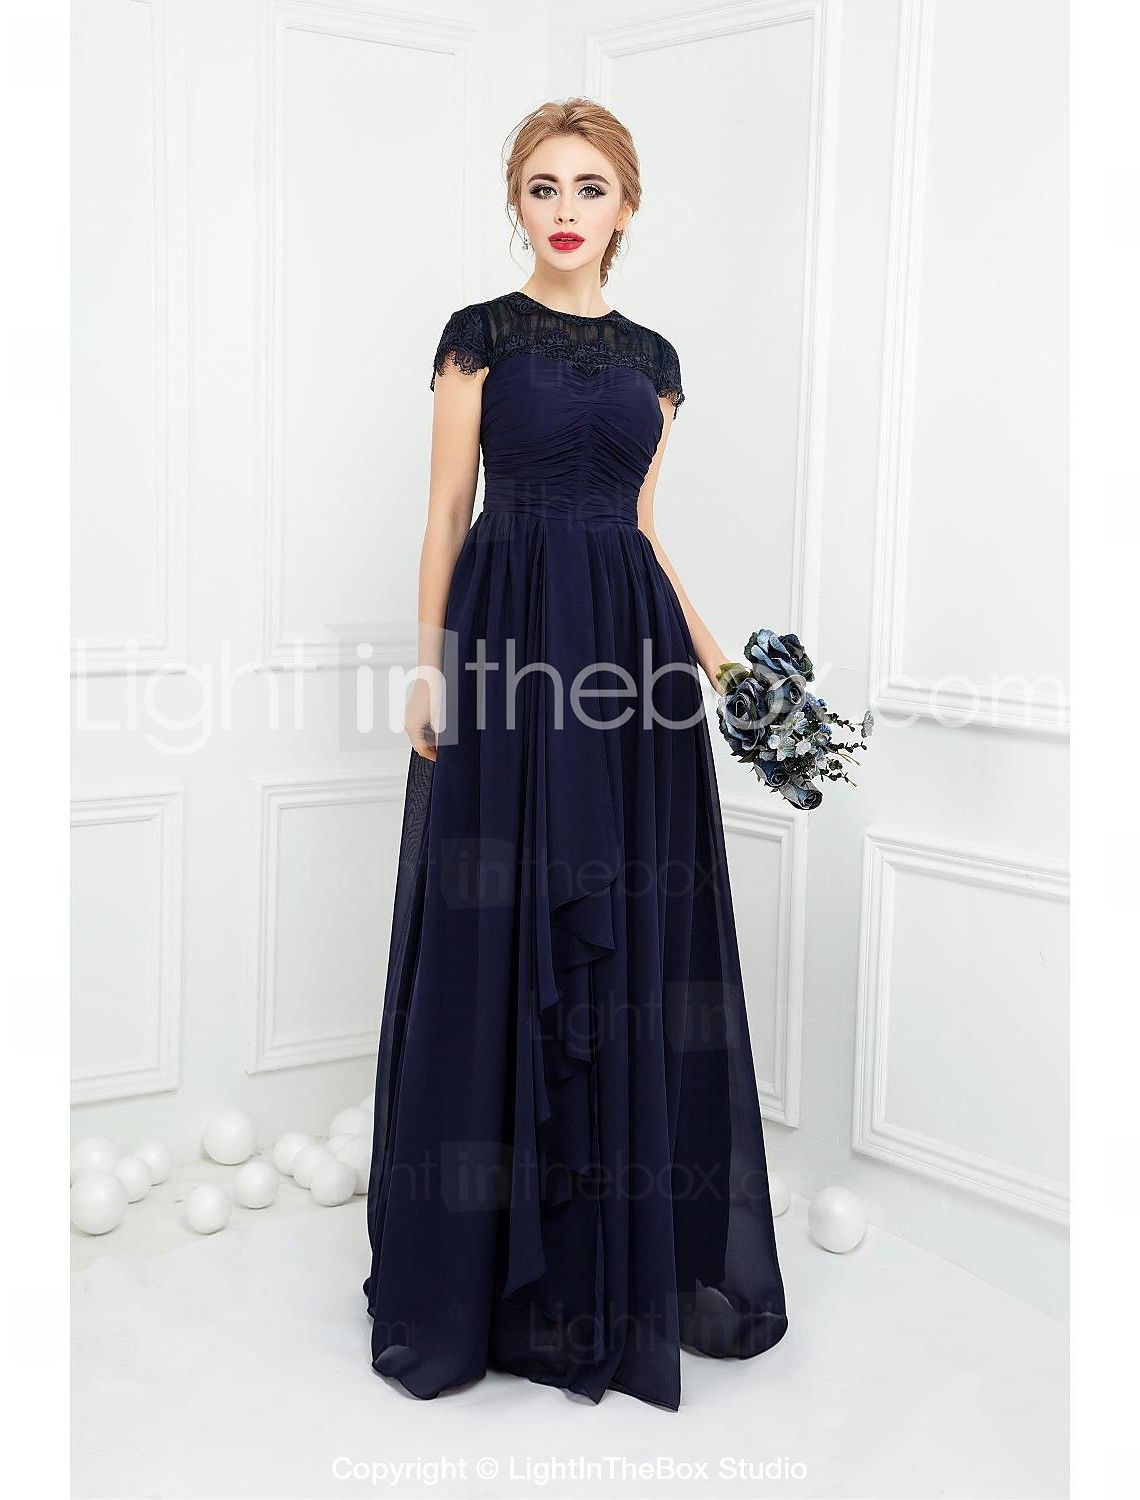 8d4fda0490 [$109.99] Ball Gown Jewel Neck Floor Length Chiffon Lace Bridesmaid Dress  with Bow(s) Lace by LAN TING Express